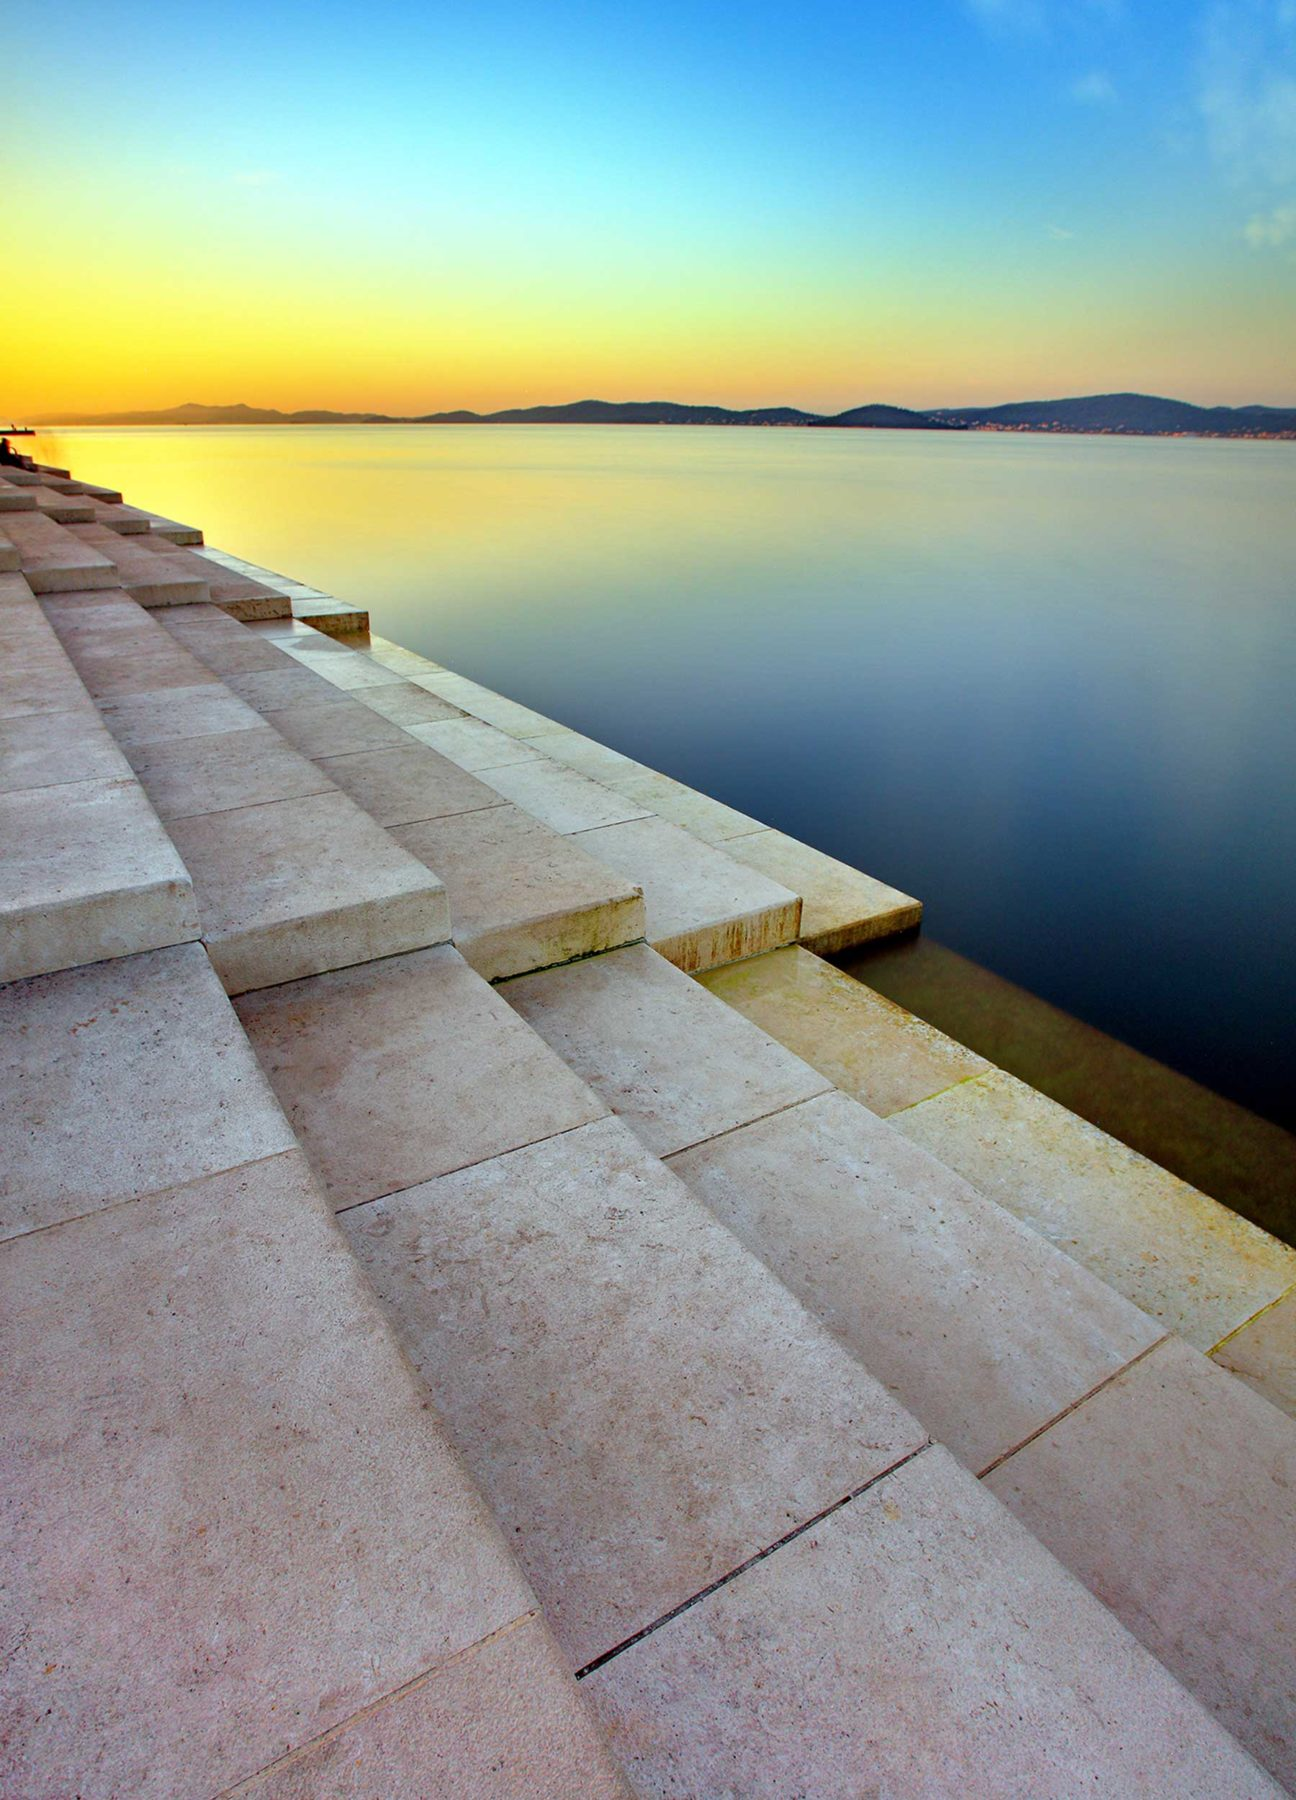 A series of steps leading into the sea, the Sea Organ exhibit, Croatia.